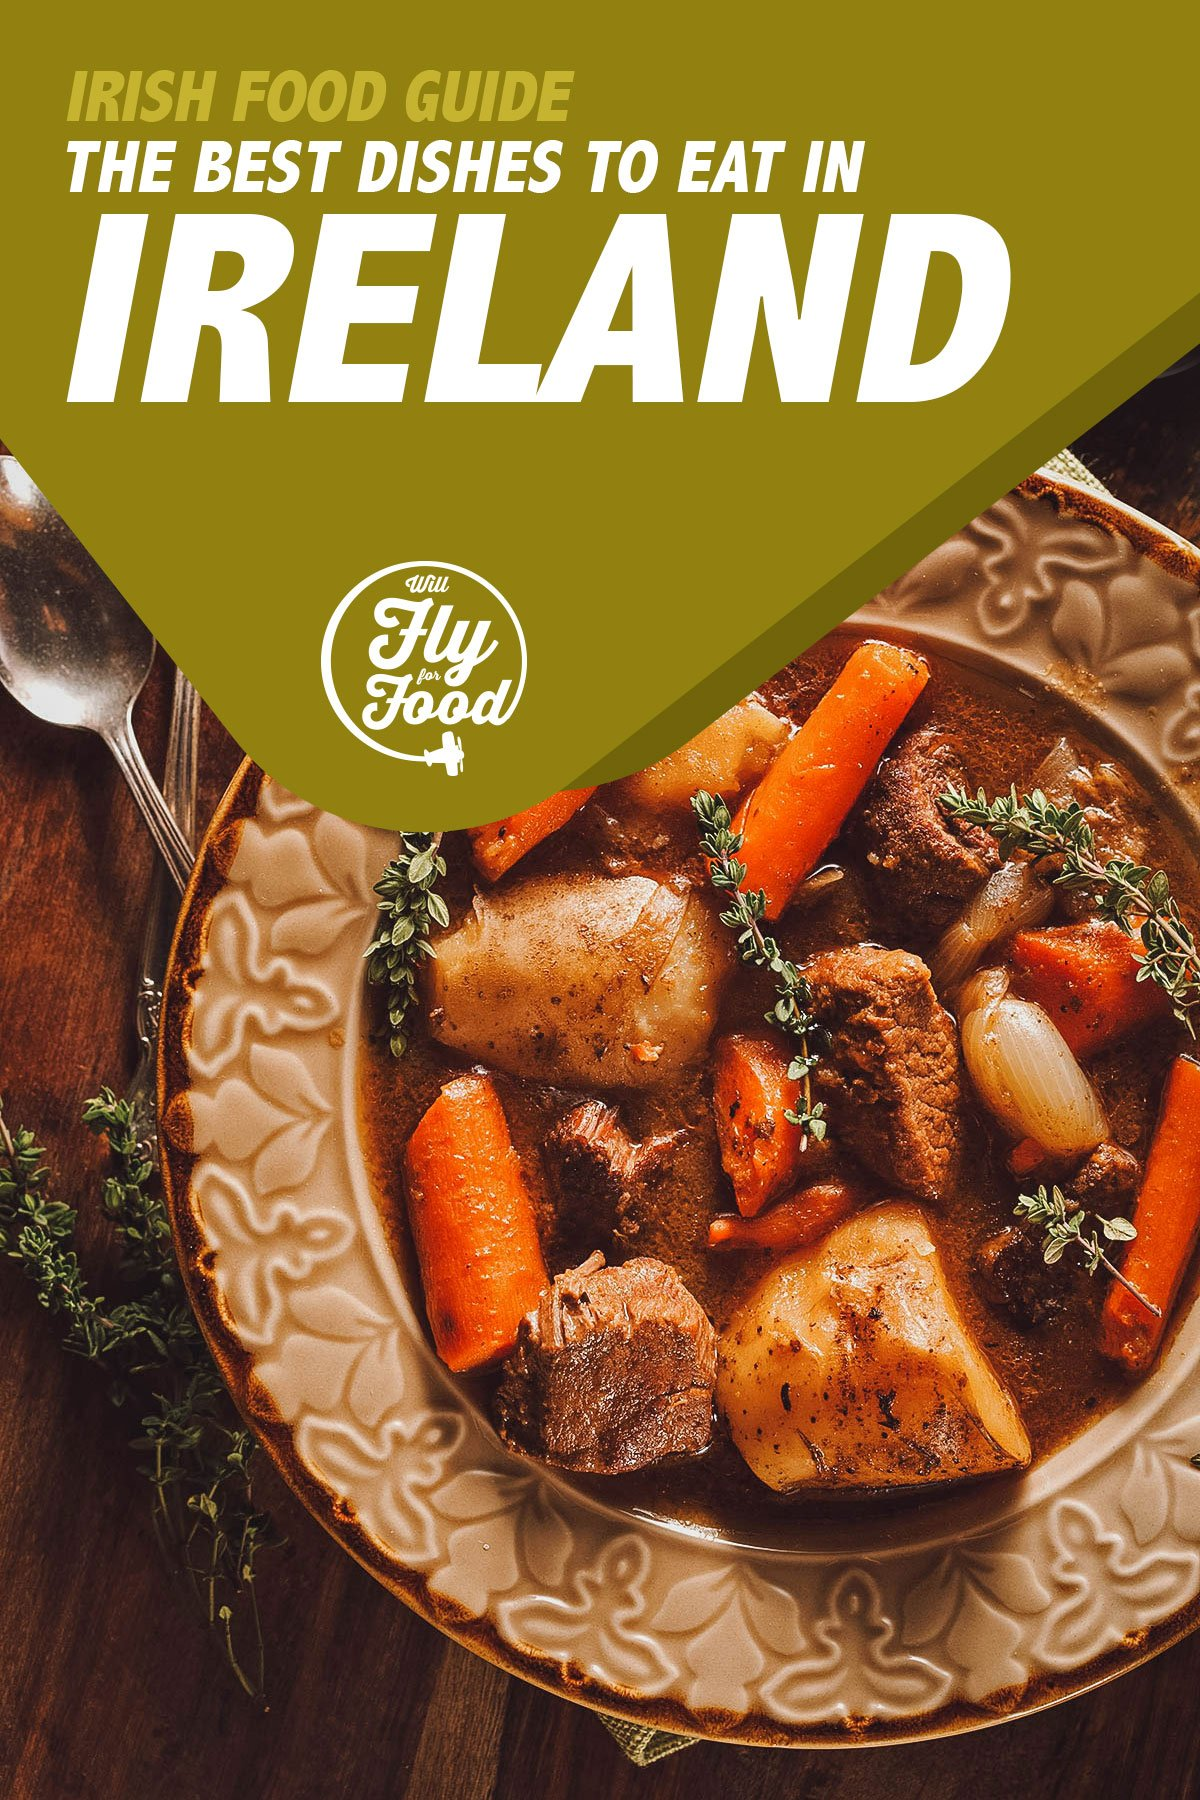 Irish stew, one of the best examples of traditional Irish food